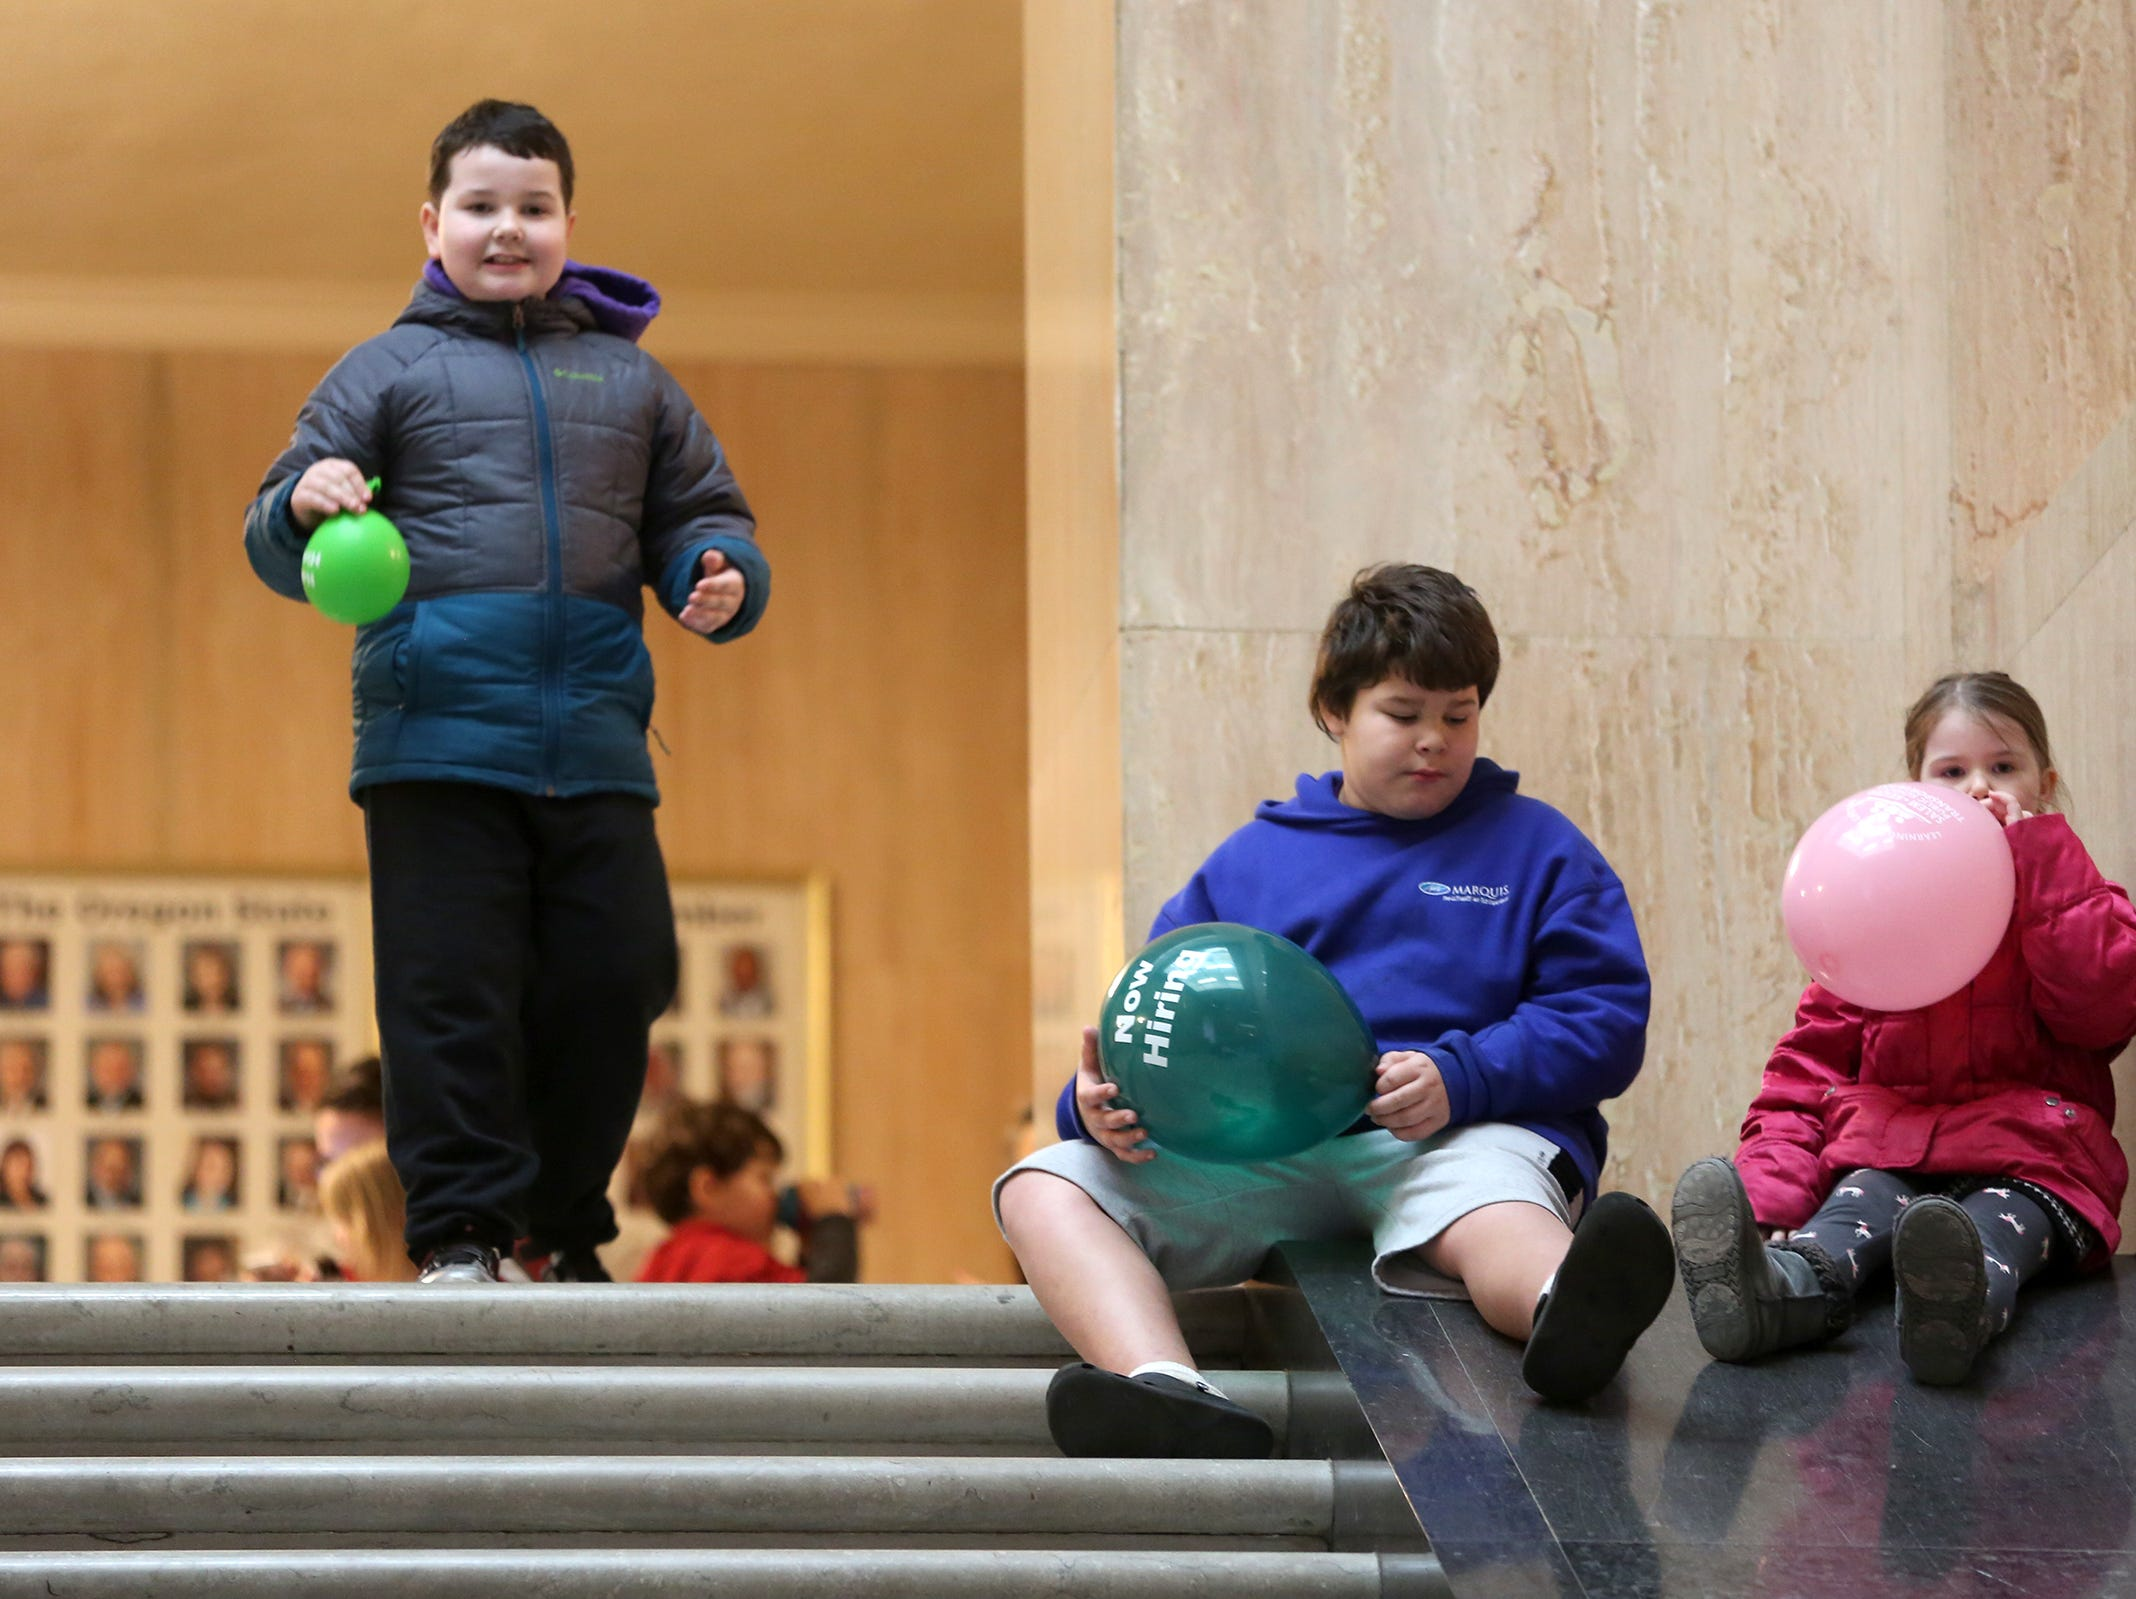 Jack McNabb, 9, William Bothum, 11 and Sierra McNabb, 7, play with balloons during Oregon's 160th Birthday Celebration at the Oregon State Capitol in Salem on Saturday, Feb. 16, 2019.